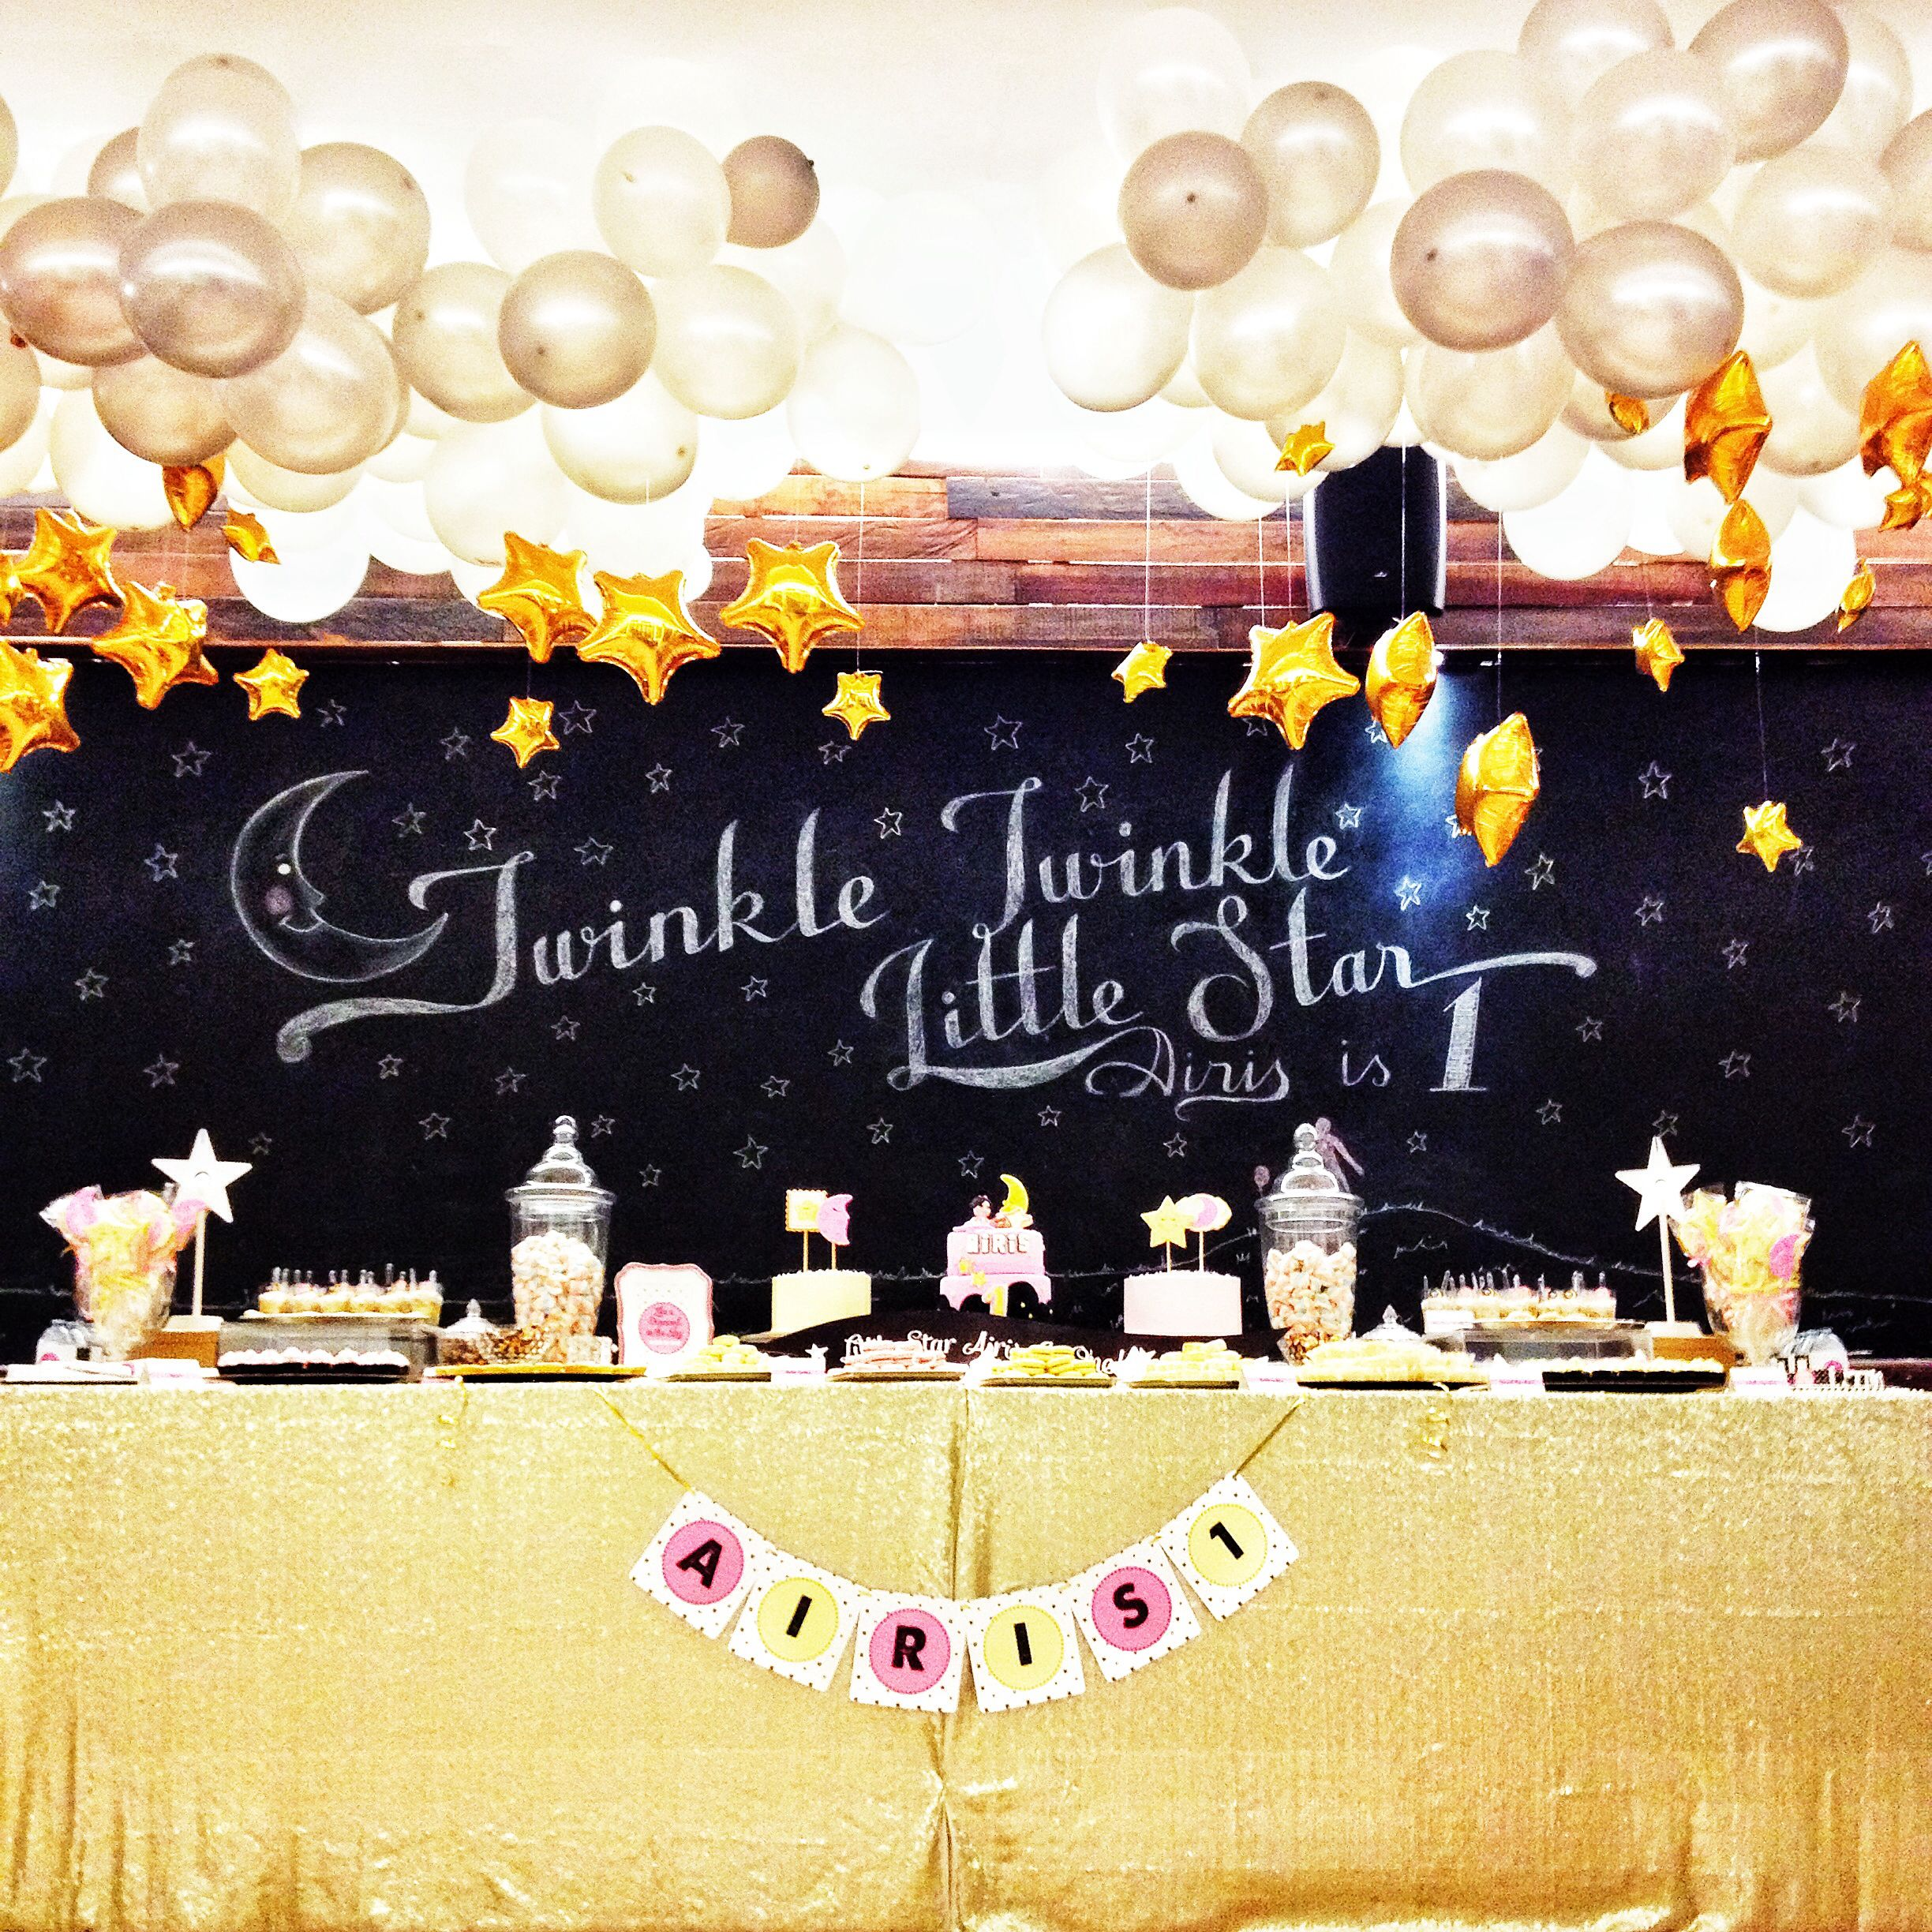 Set of 3 White Rabbits Design Nursery Rhyme Twinkle Twinkle 1st Birthday Party Decorations First Birthday Balloons Party Decorations Twinkle Twinkle Little Star White and Gold Balloons One Year Old is What You Are